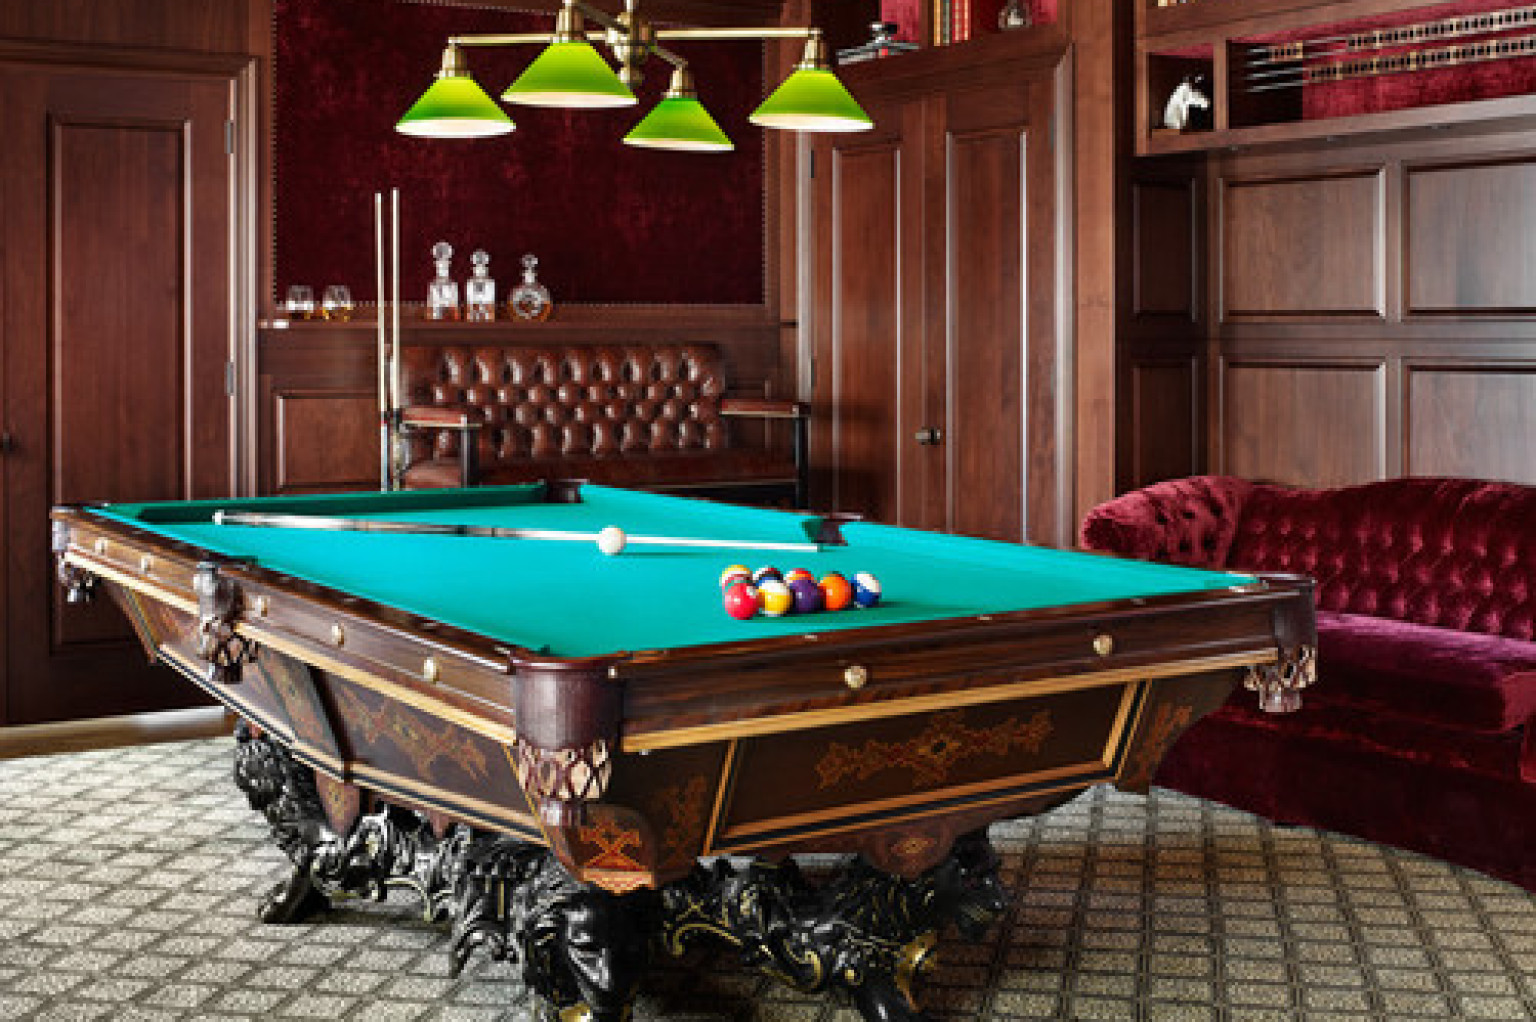 Pool Room Decorating Ideas shop wayfairs inspiration gallery for home design and decor ideas across all styles and budgets browse thousands of photos of living rooms dining rooms 15 Homes With Amazing Pool Tables That Are Anything But An Eyesore Photos Huffpost